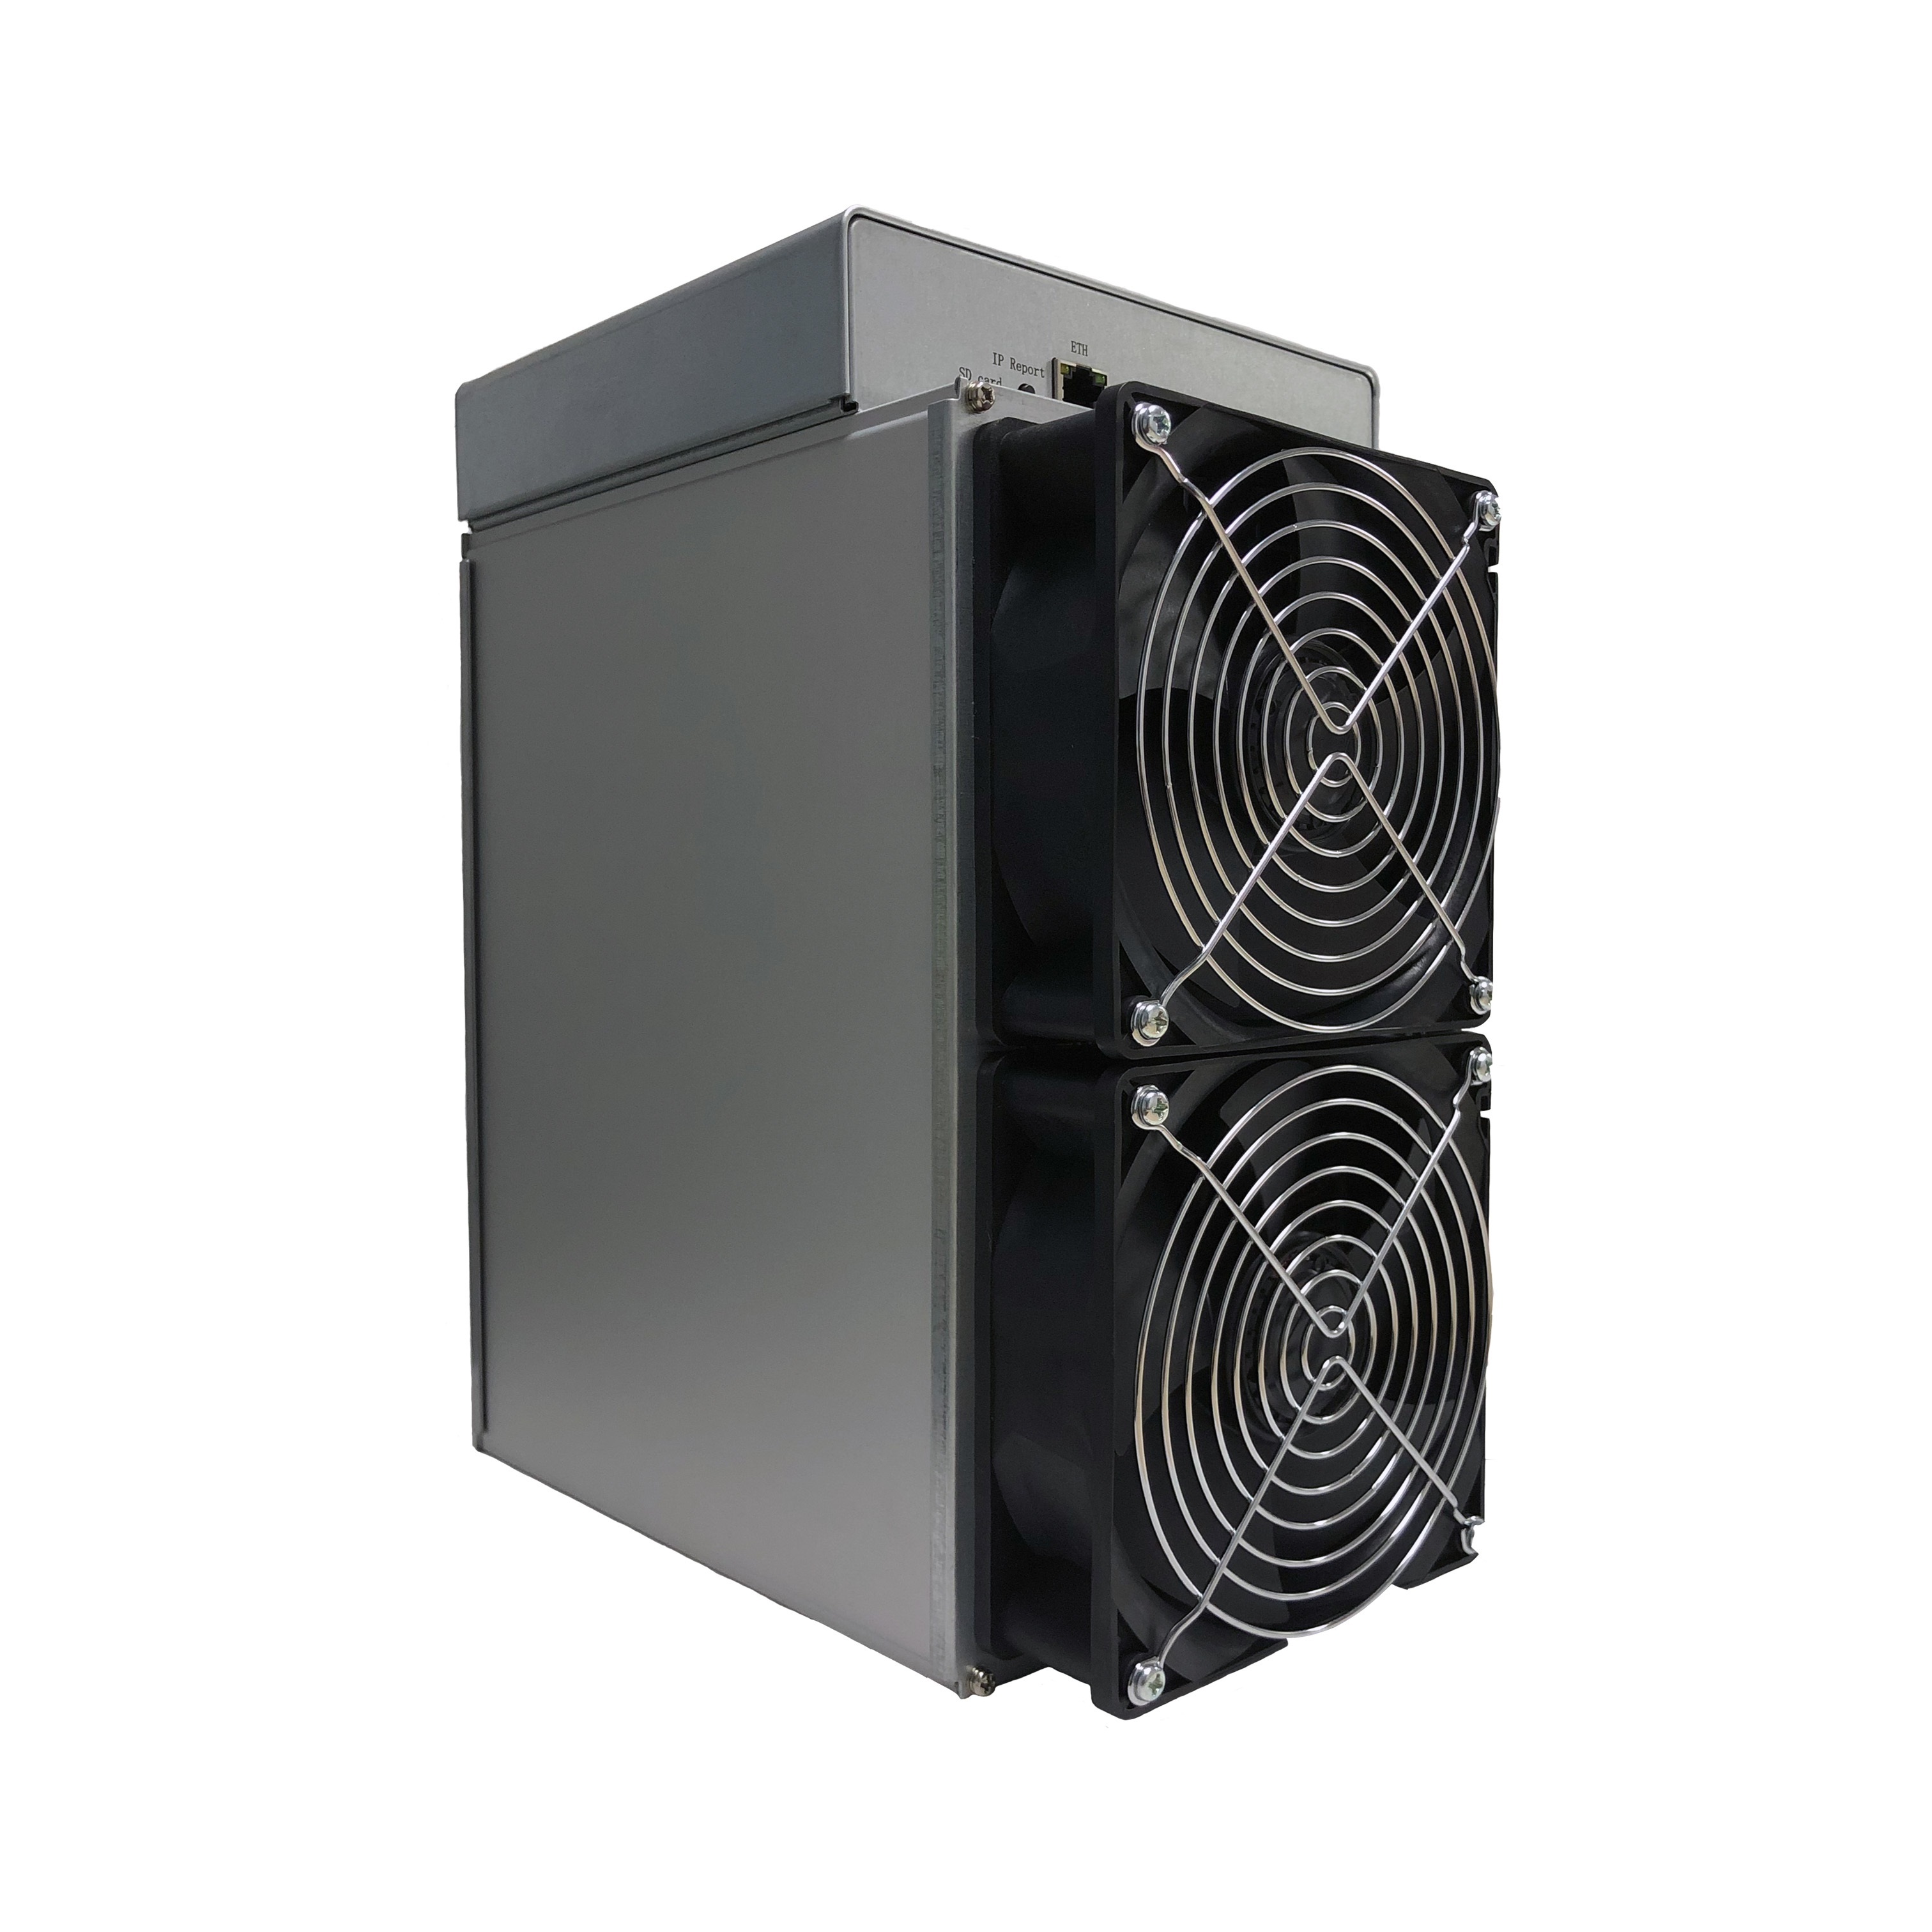 Tomax T17 Bitmain Antminer T17 40th/s 2200w Bitcoin Mining Machine Antminer  T17, View antminer t17 bitcoin mining hardware bitmain antminer t17 asic